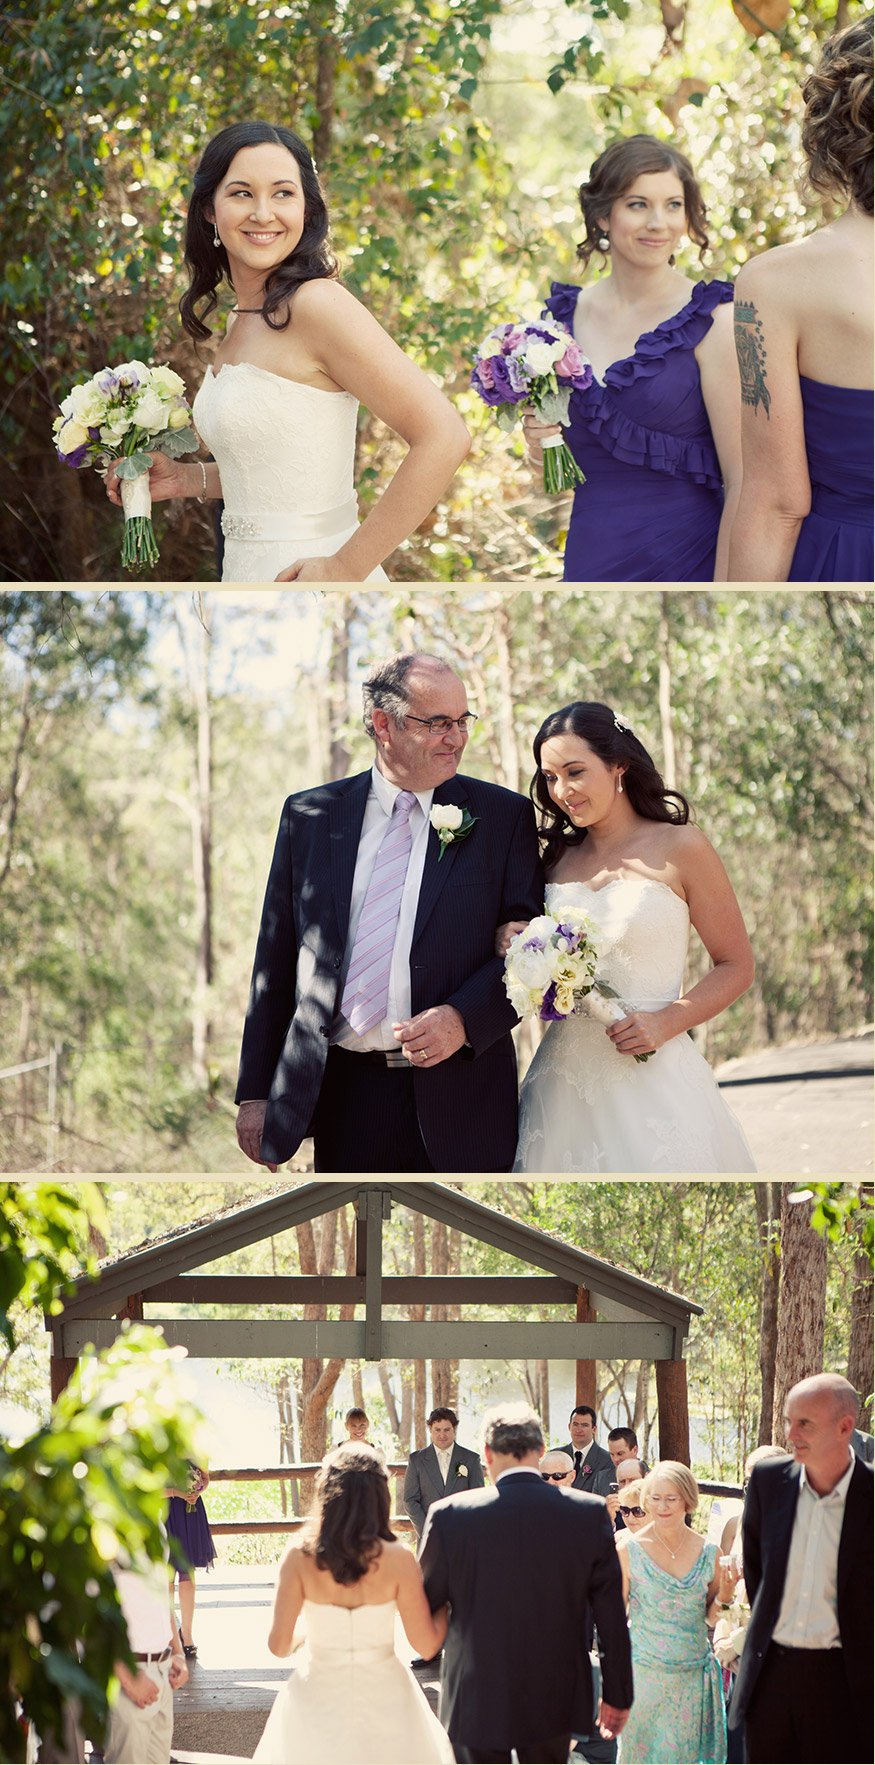 Brisbane Wedding Phoographer Blog-collage-1323507964983